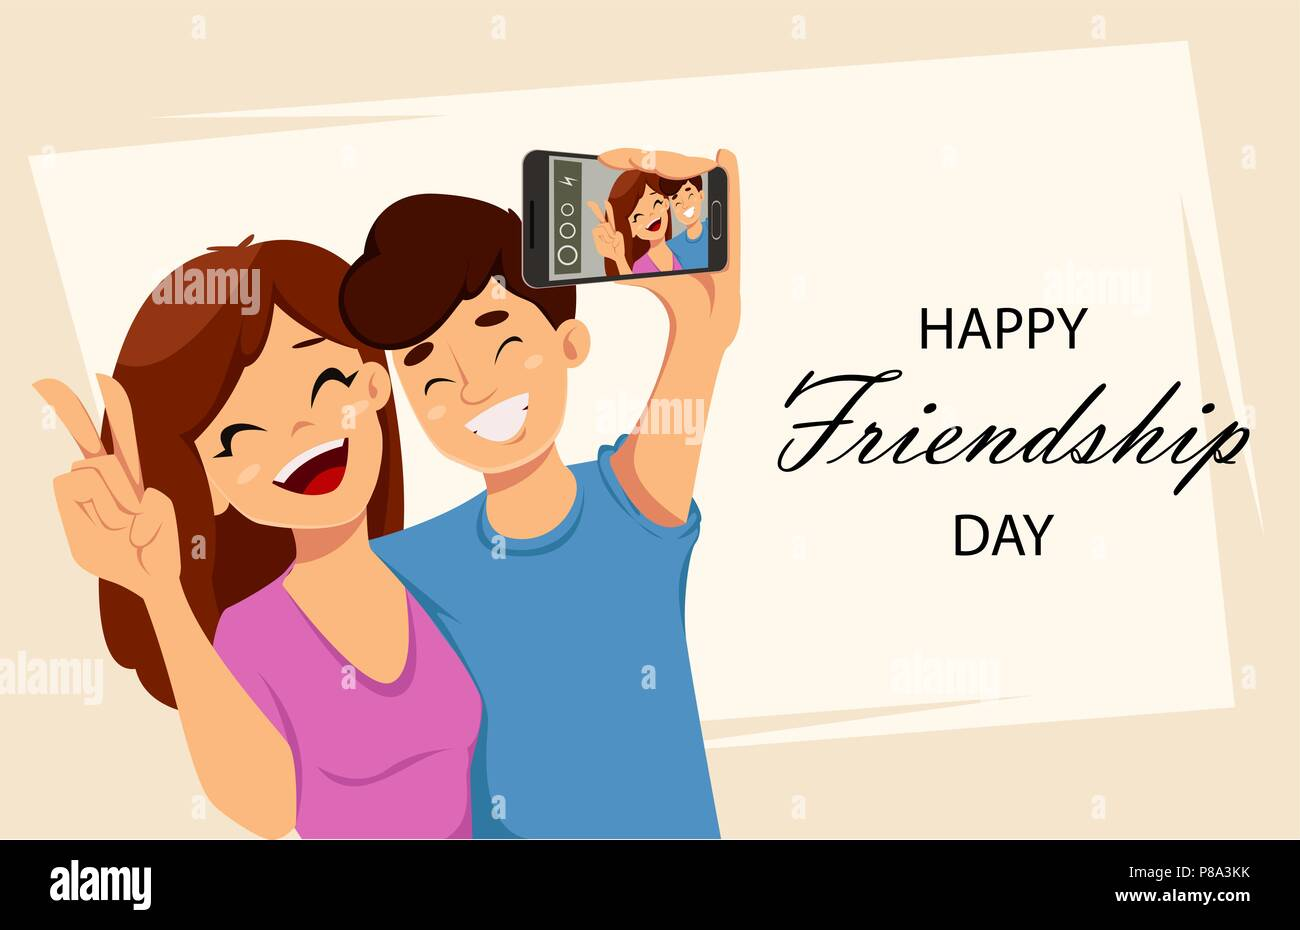 Happy Friendship Day Greeting Card Poster Or Banner Two Friends